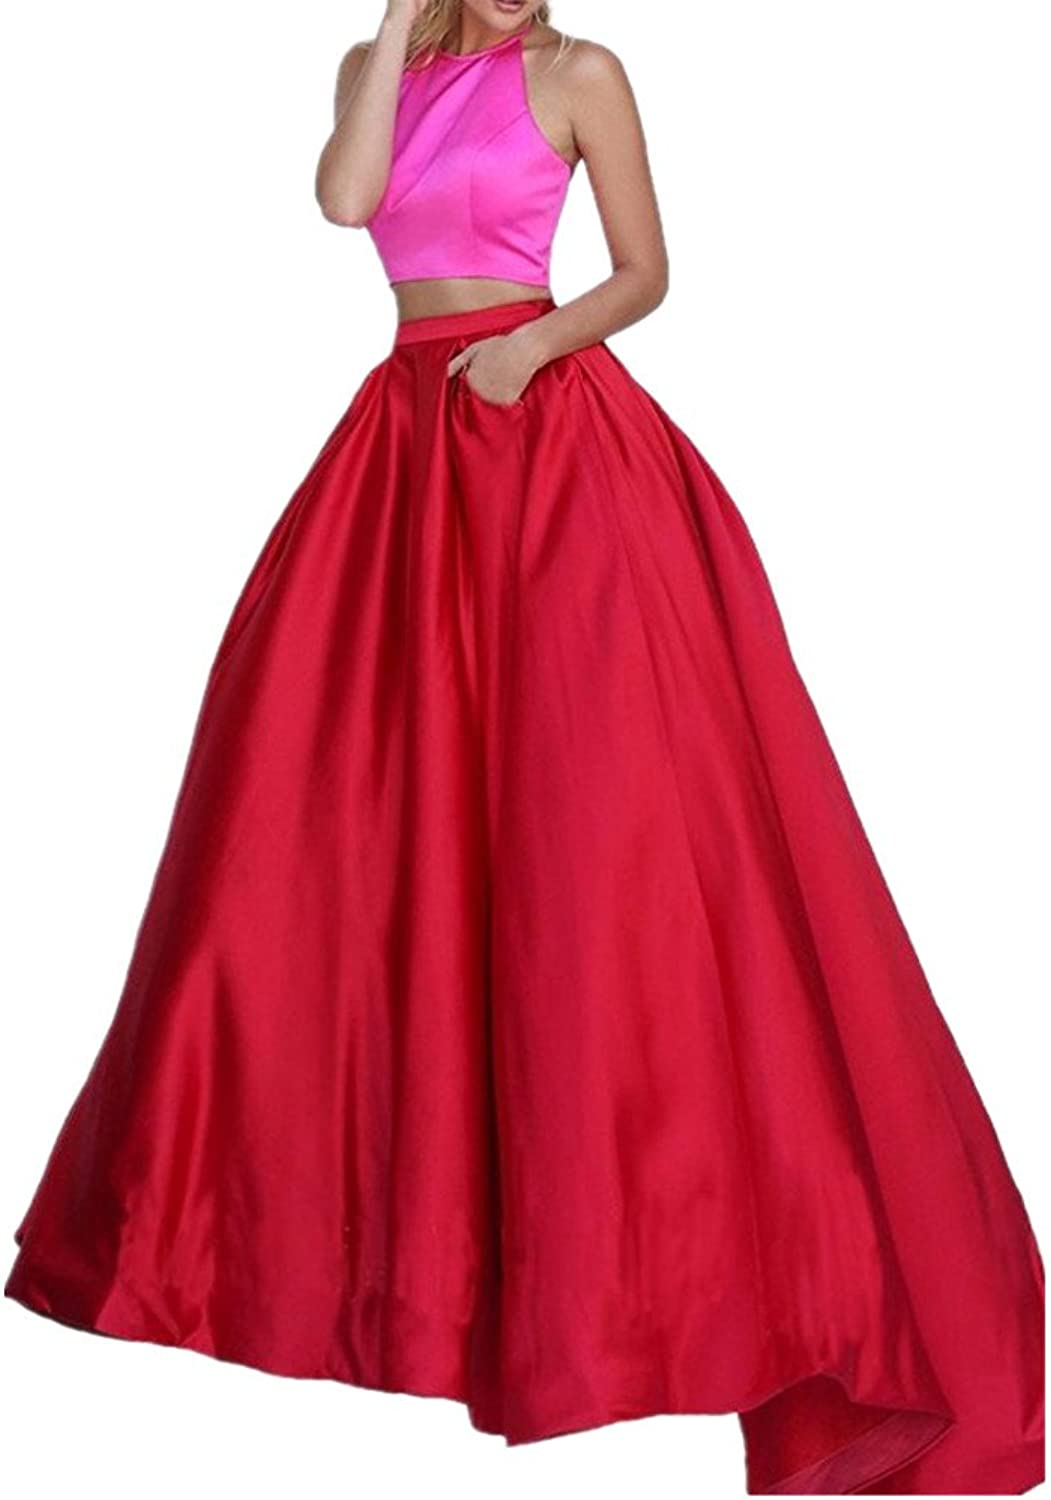 Beautydress Womens's Simple Two Pieces Formal Occasion Long Evening Dress BP006